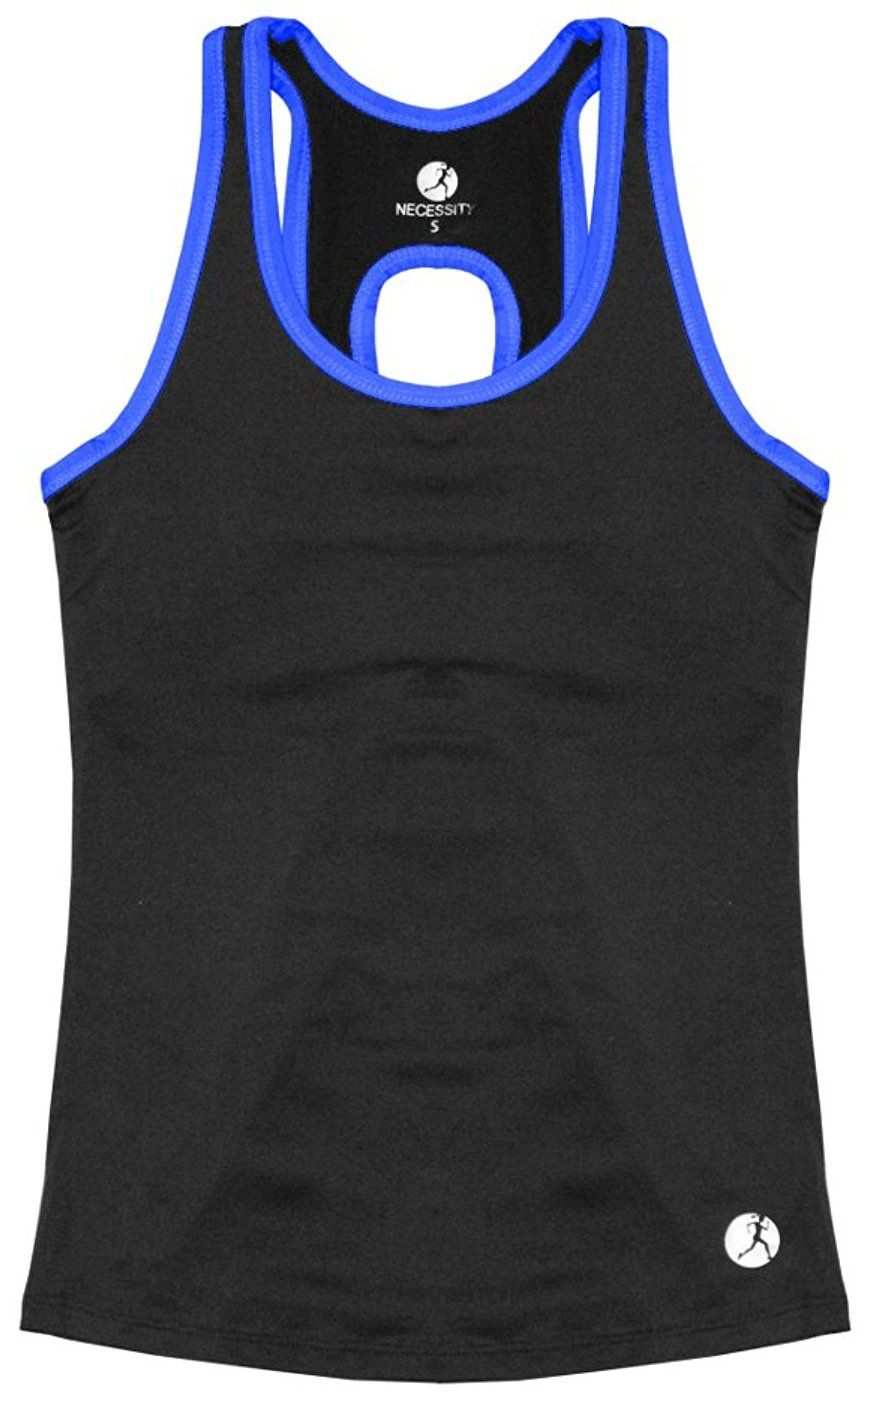 6637c08a566c9 Necessity Women s Athletic Performance Tank Top with Built in Sport Bra   Buy Now from Amazon